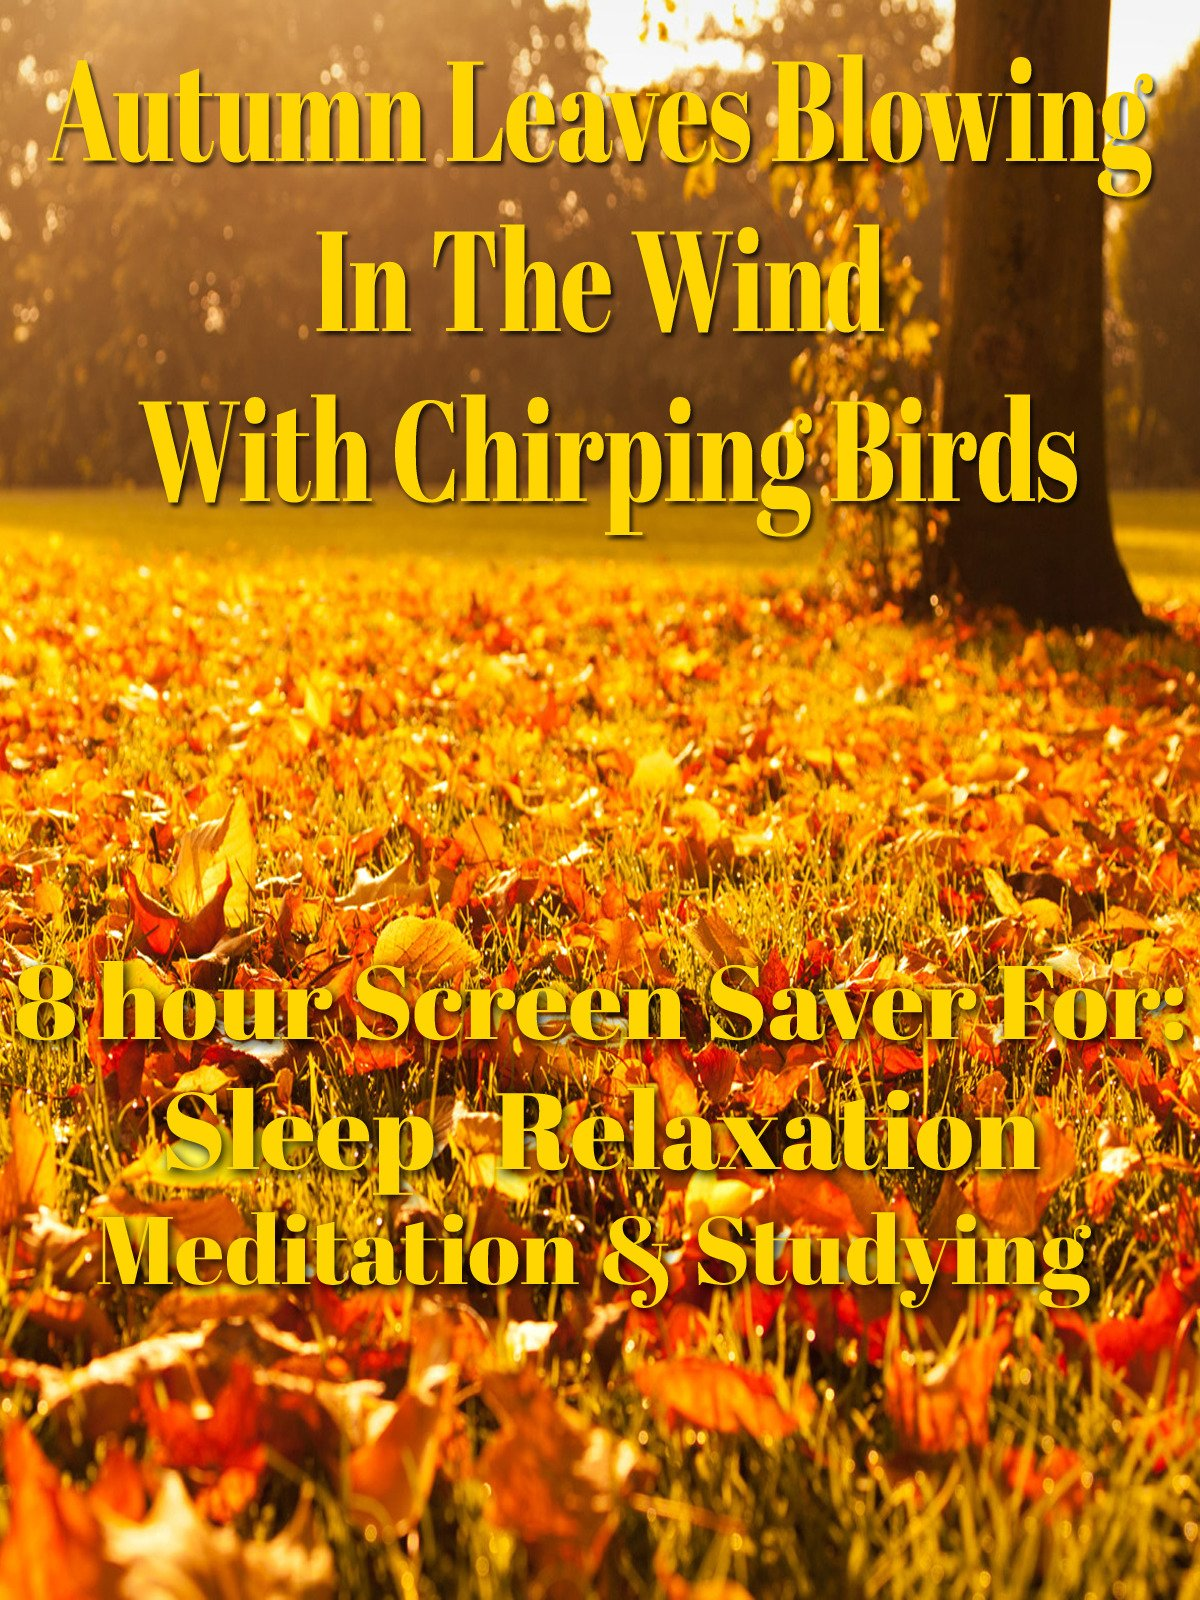 Autumn leaves blowing in the wind with chirping birds 8 hour screen saver for sleep meditation relaxation & studying